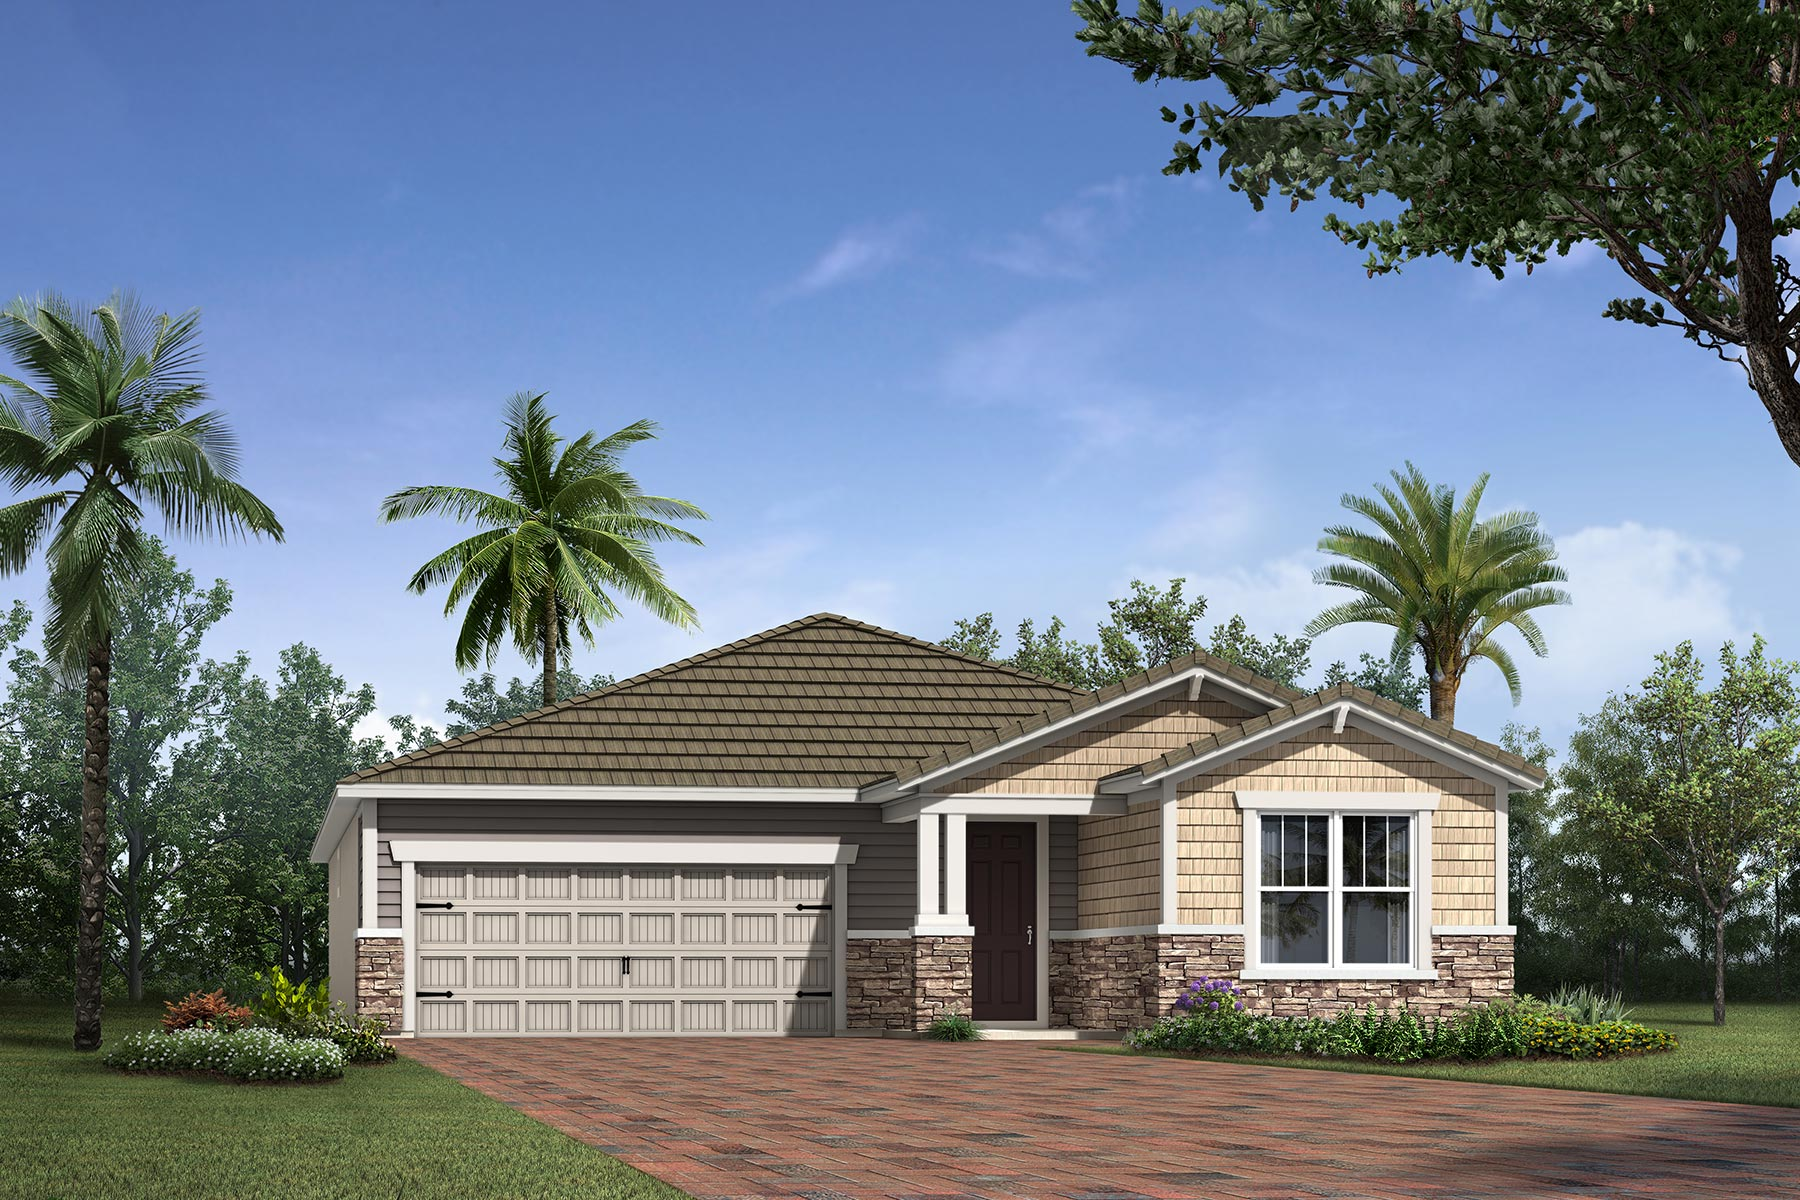 Sunbeam Plan Elevation Front at Sunrise Preserve at Palmer Ranch in Sarasota Florida by Mattamy Homes